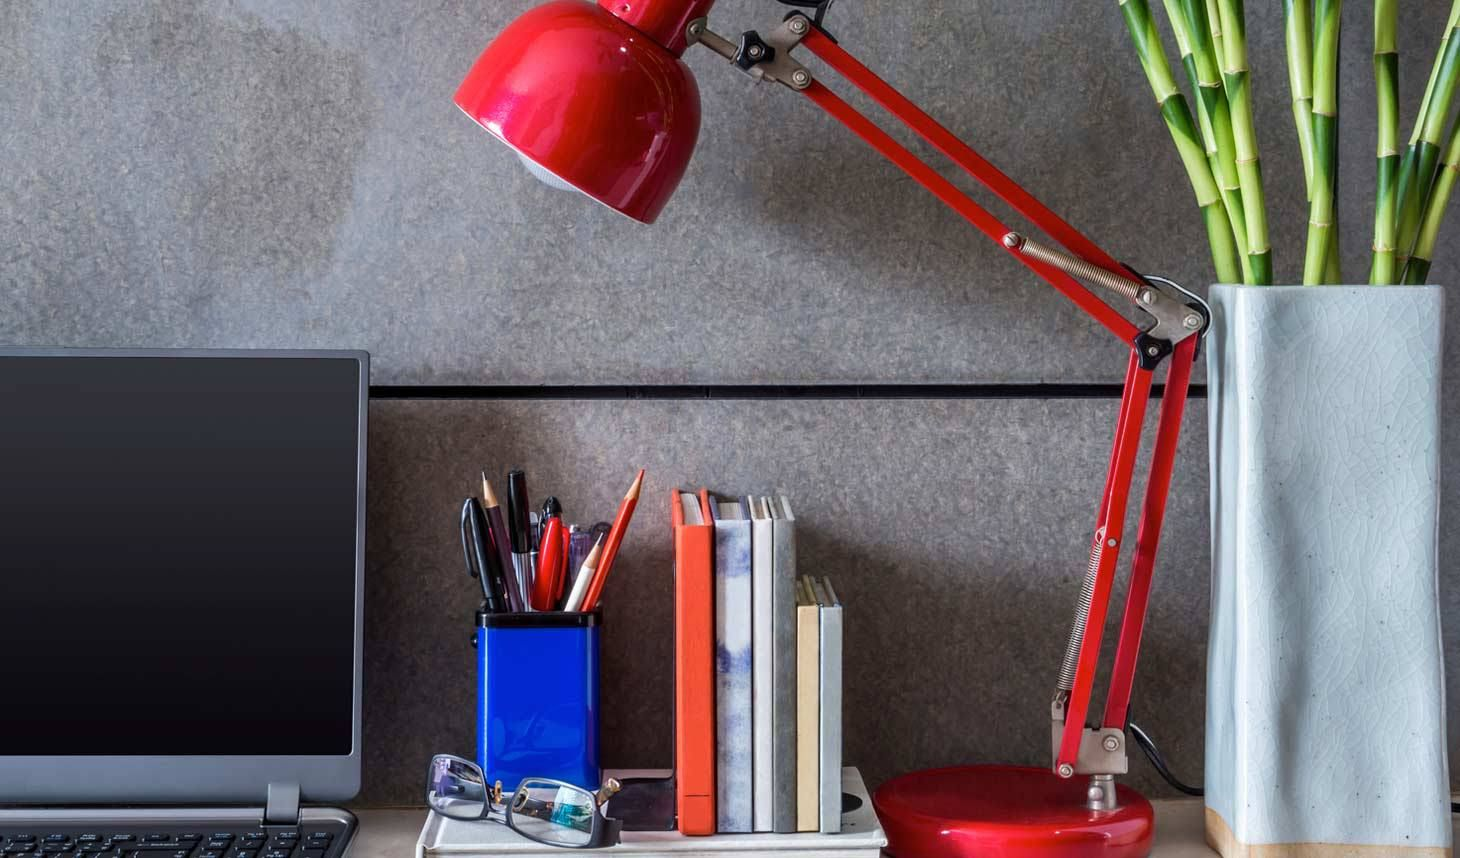 Office Cubicles Should Be Nicely Decorated And Attractive Colorful desk accessories